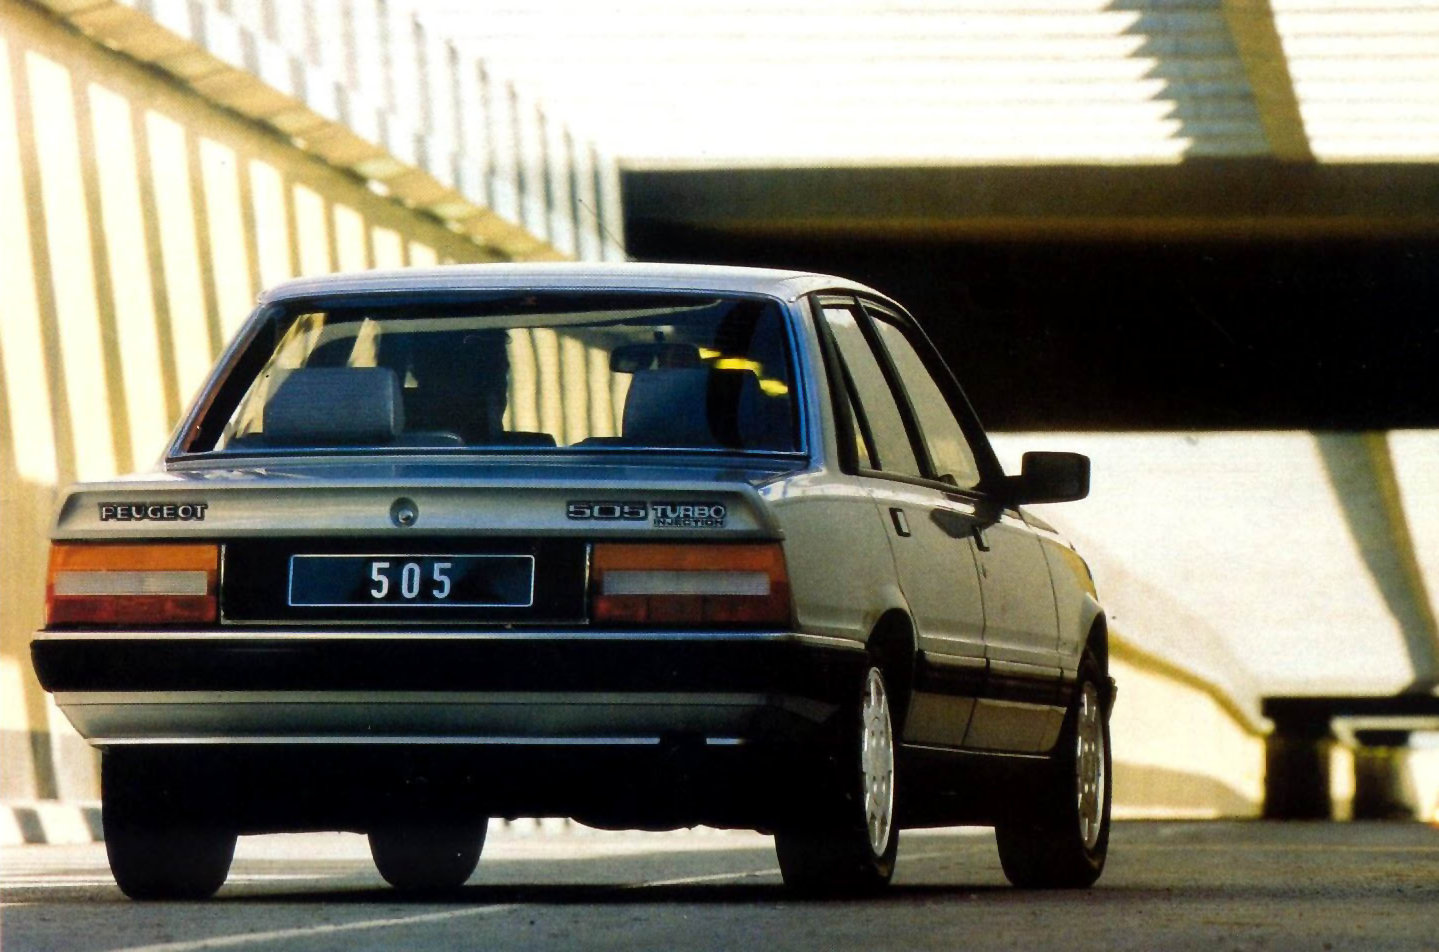 Peugeot 505 Turbo Injection 1986 3